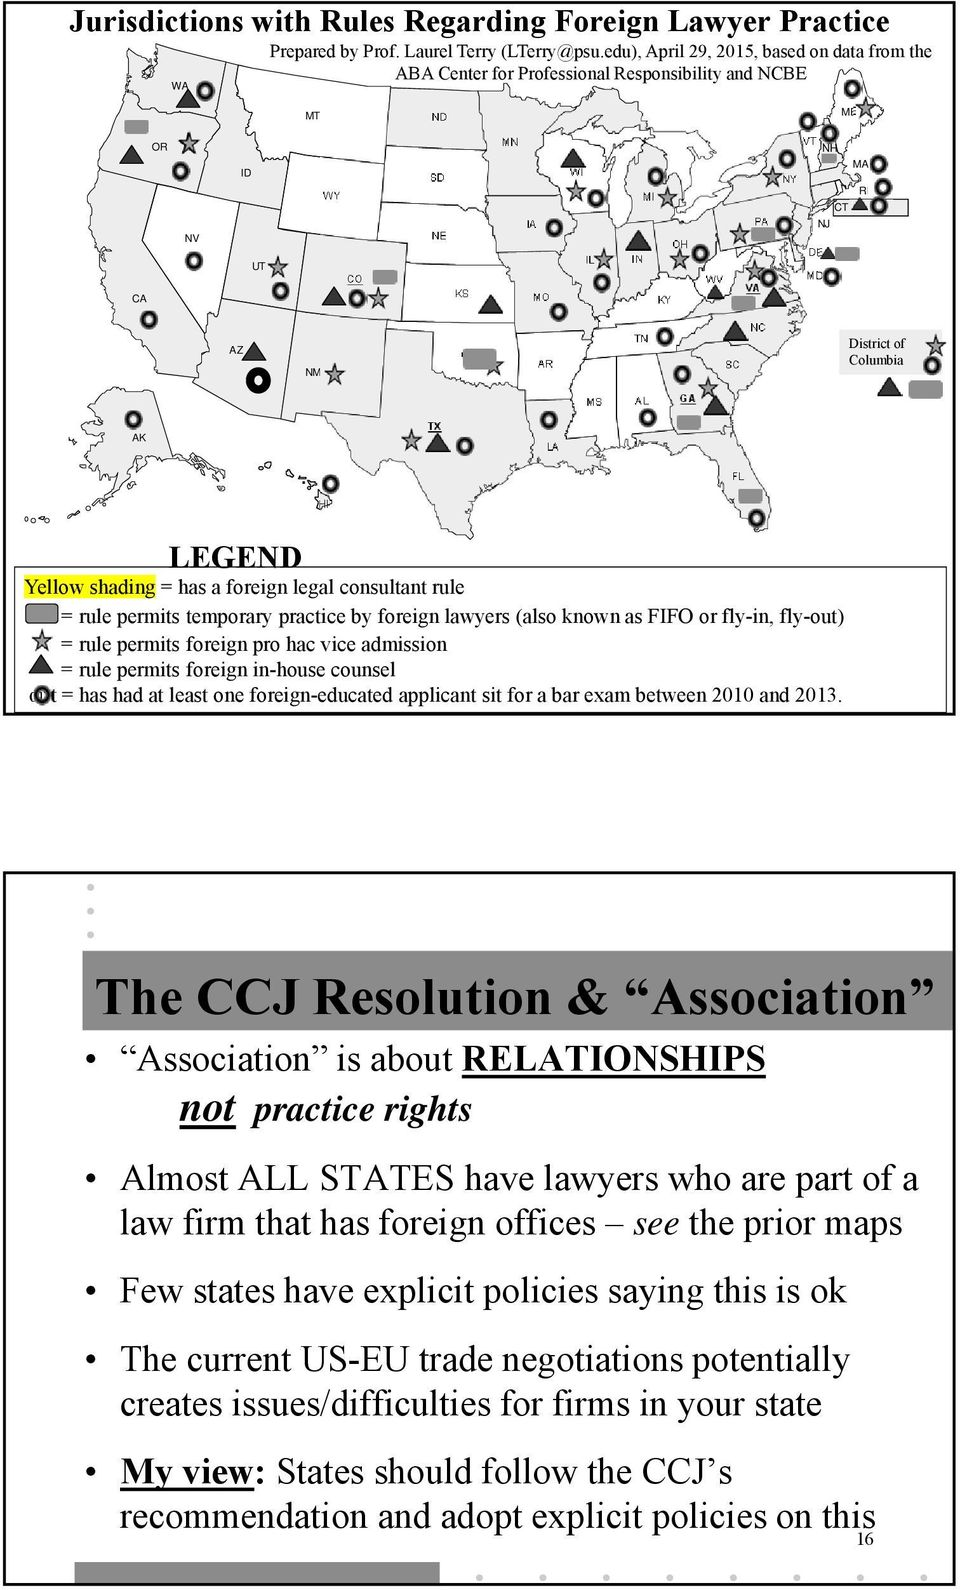 RI AZ NM OK AR TN NC SC District of Columbia MS AL GA AK TX LA FL HI LEGEND Yellow shading = has a foreign legal consultant rule = rule permits temporary practice by foreign lawyers (also known as